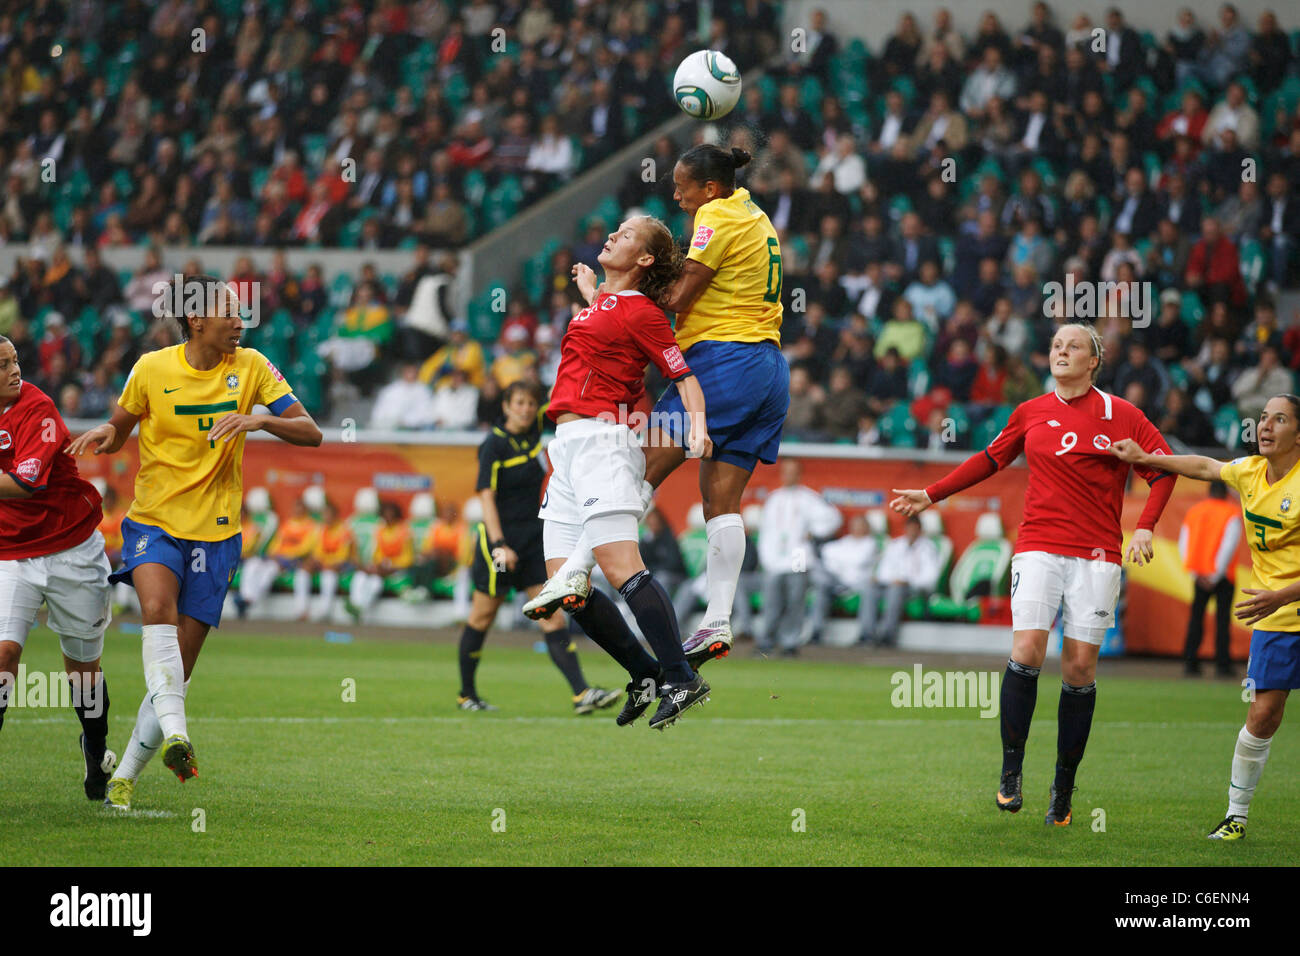 Madeleine Giske of Norway (l) and Rosana of Brazil (r) jump for the ball during a FIFA Women's World Cup match - Stock Image